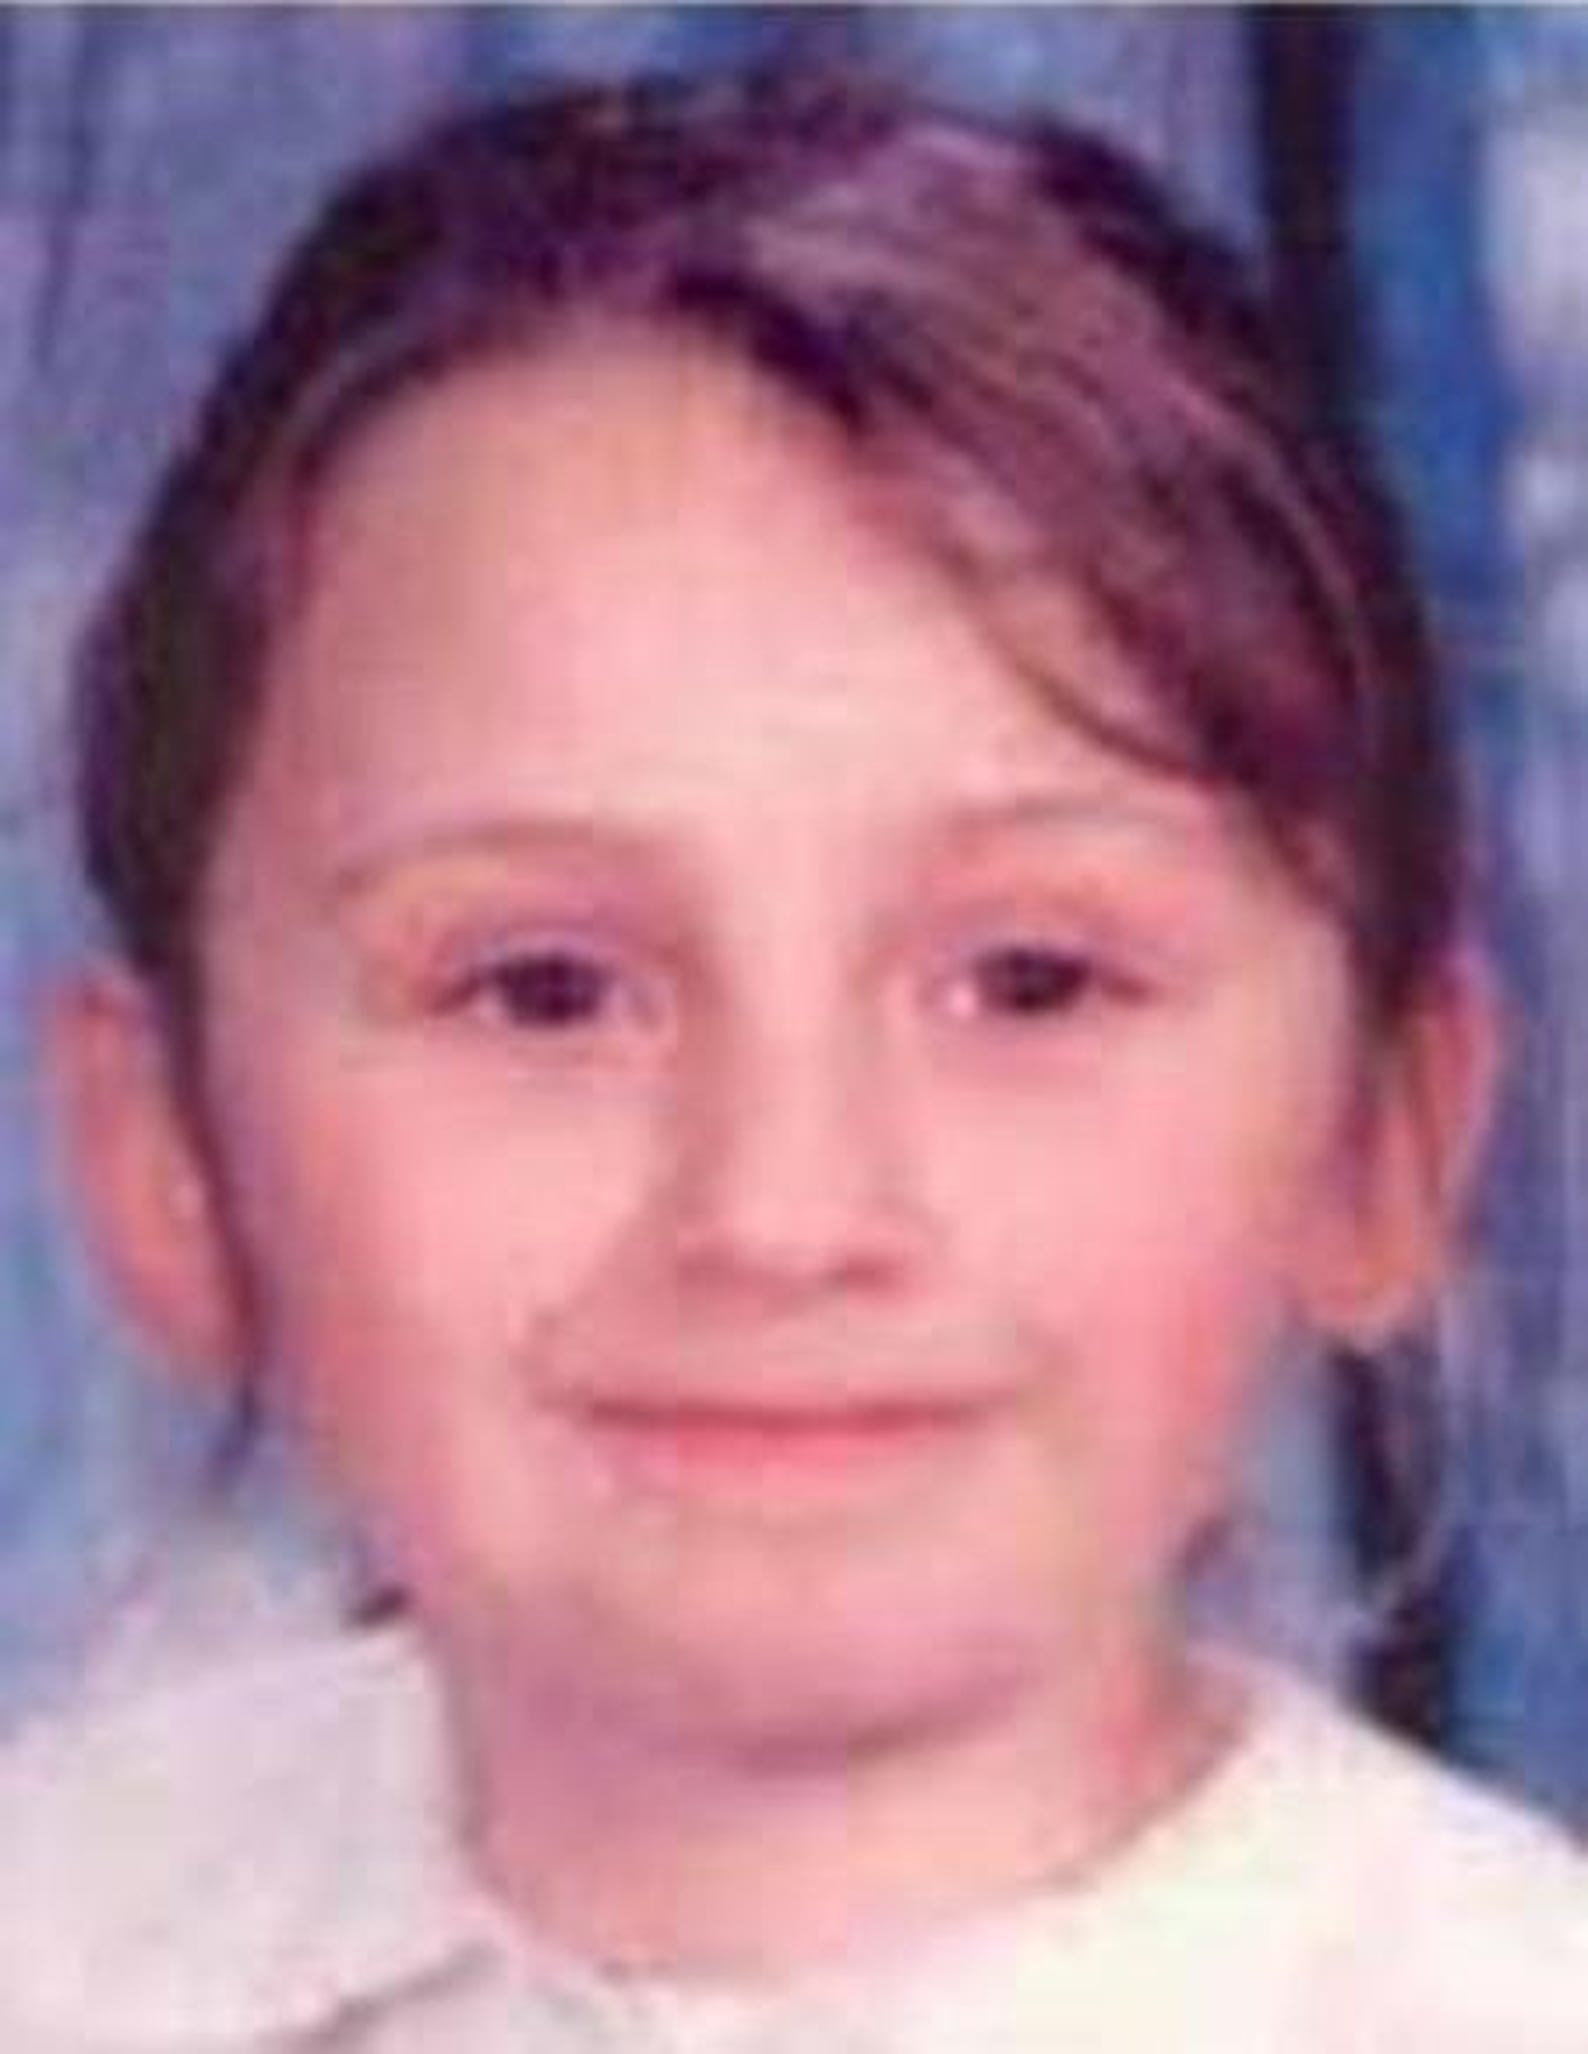 Crystal Ann Tymich was 6 when she went missing from South Los Angeles, California, on June 30, 1994.More information and age-progressed photos here.